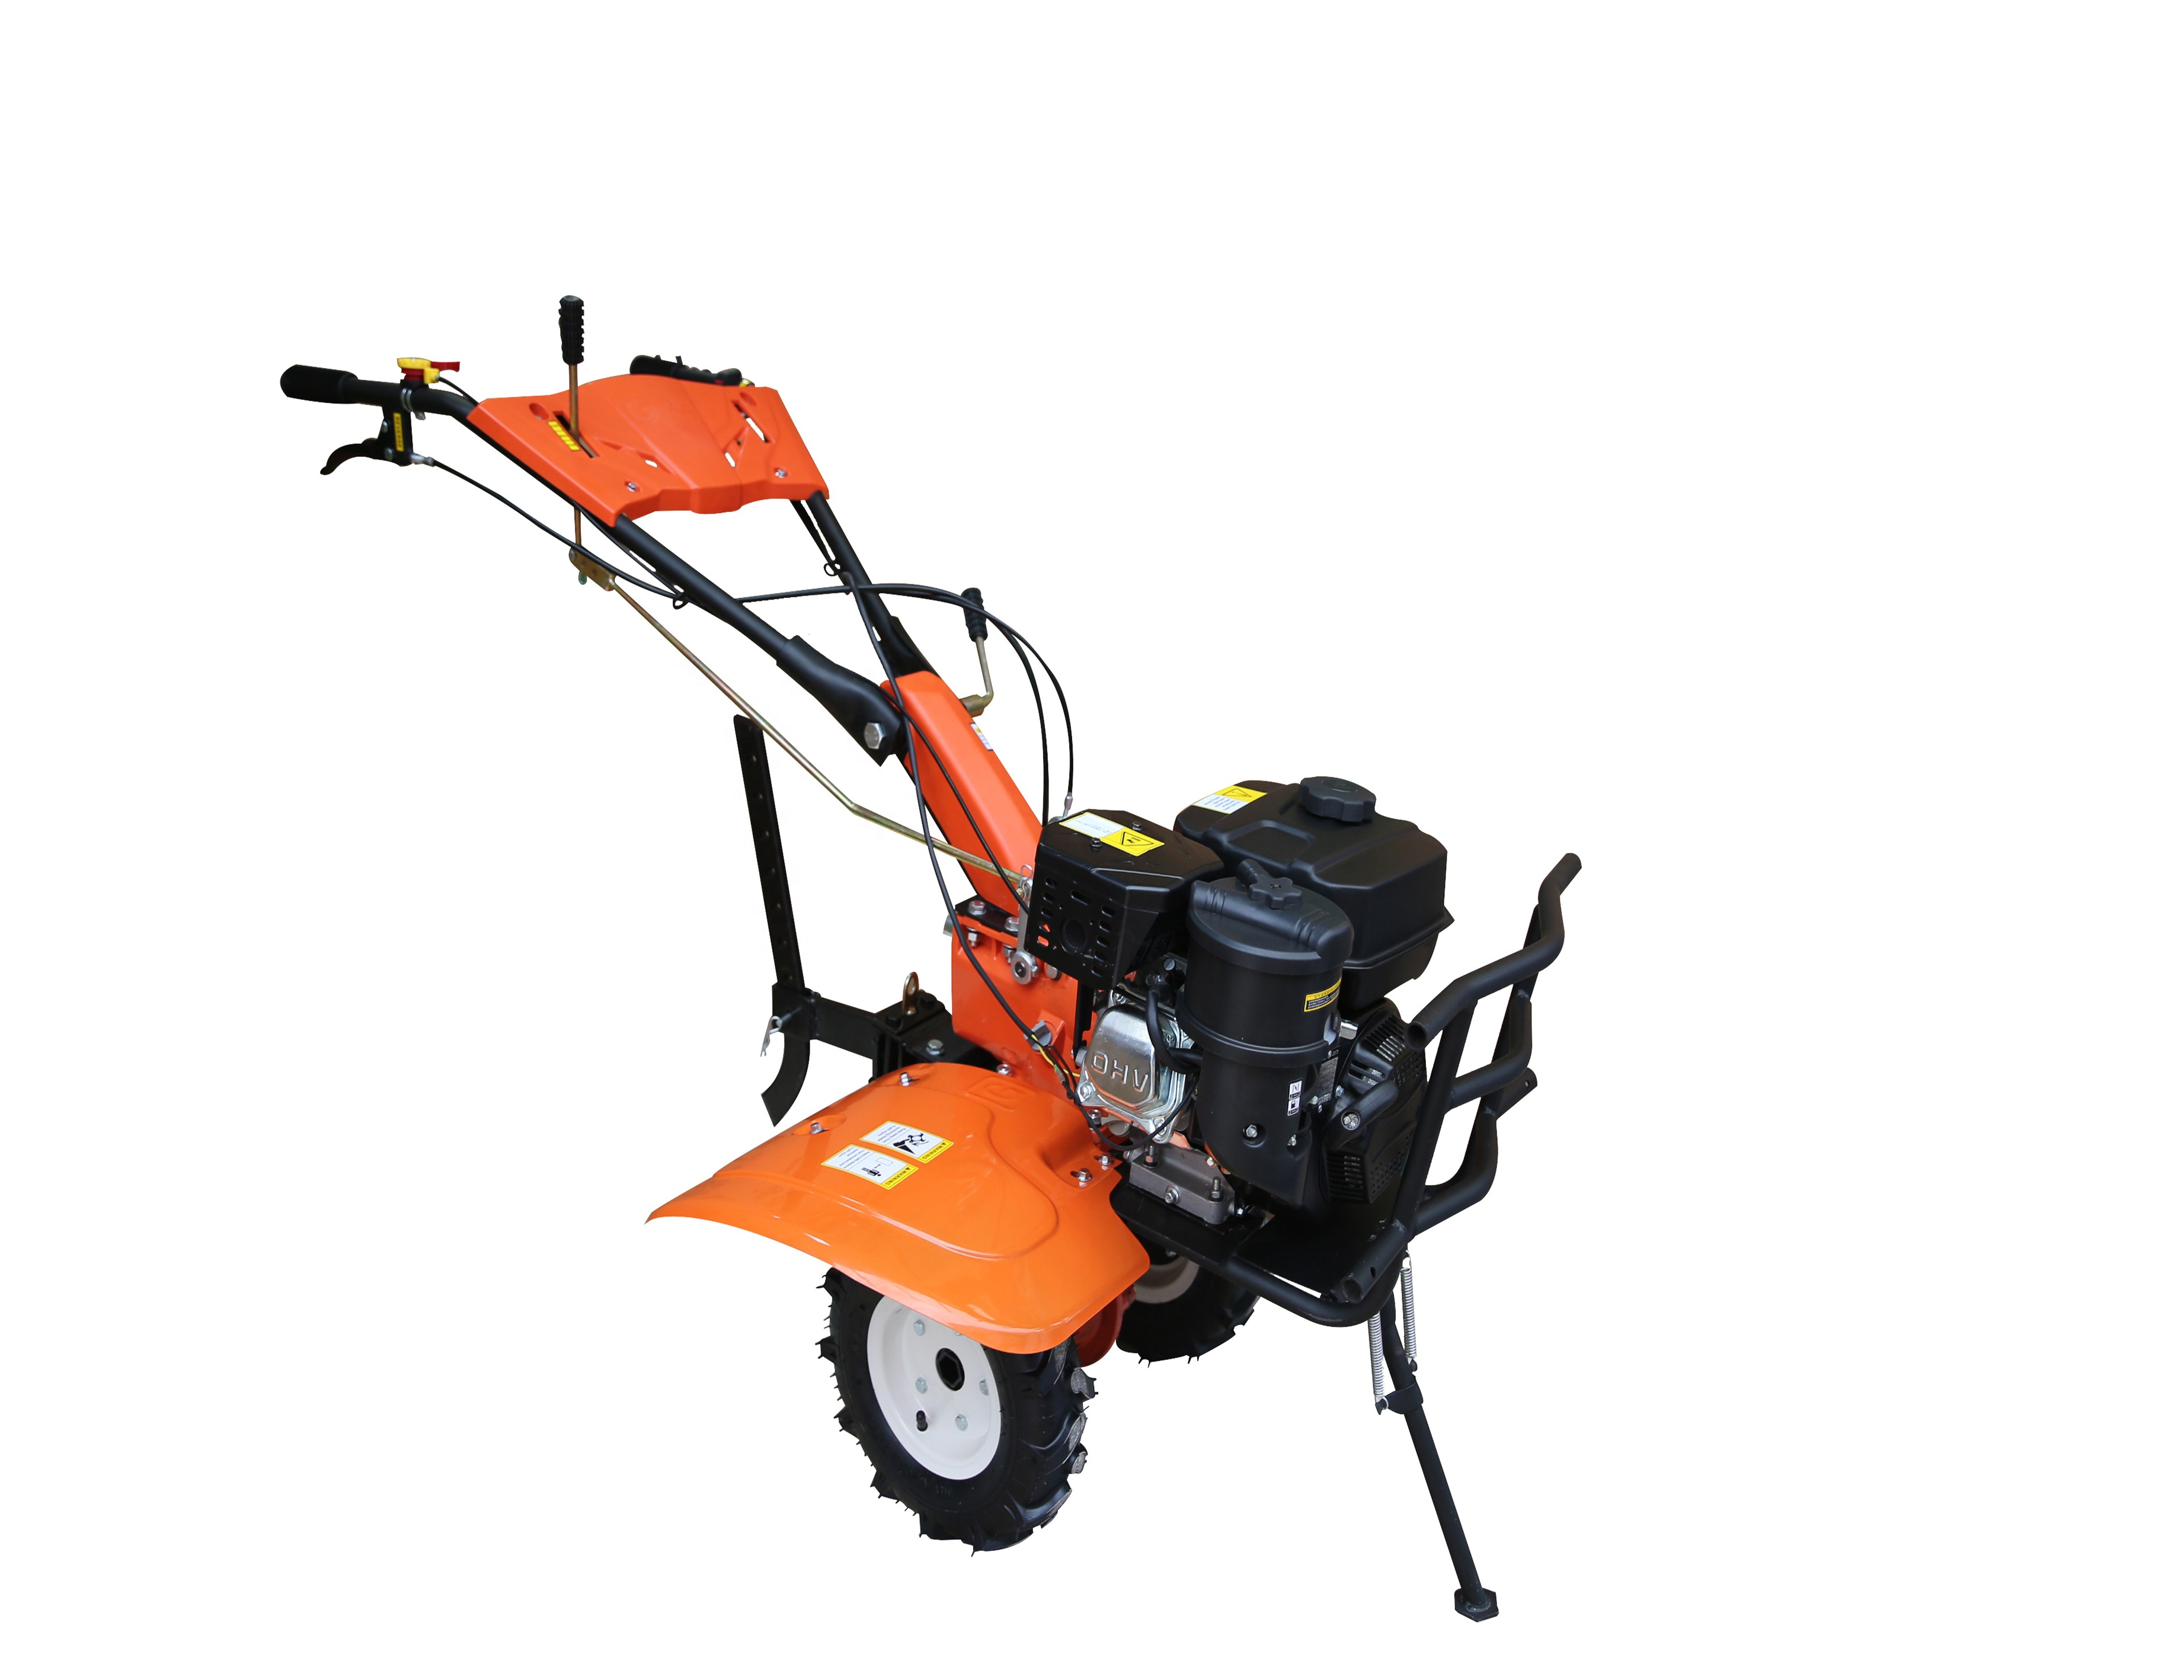 Mini Rotavator Tiller With Low Price Buy Farrm Machinery Gasoline